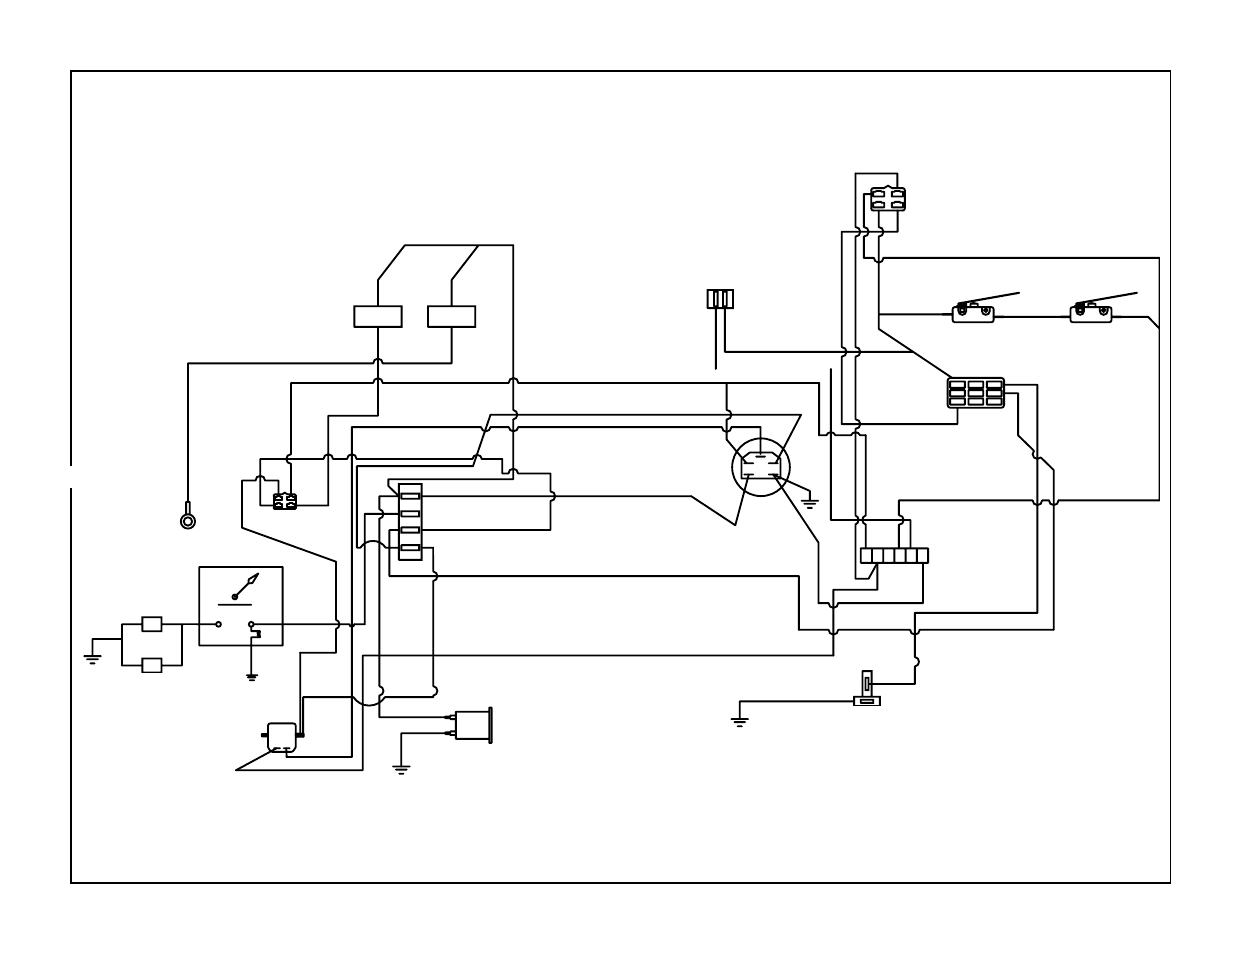 bush hog es1744 wiring diagram kohler wiring harness | bush hog zero turn mowers user ...